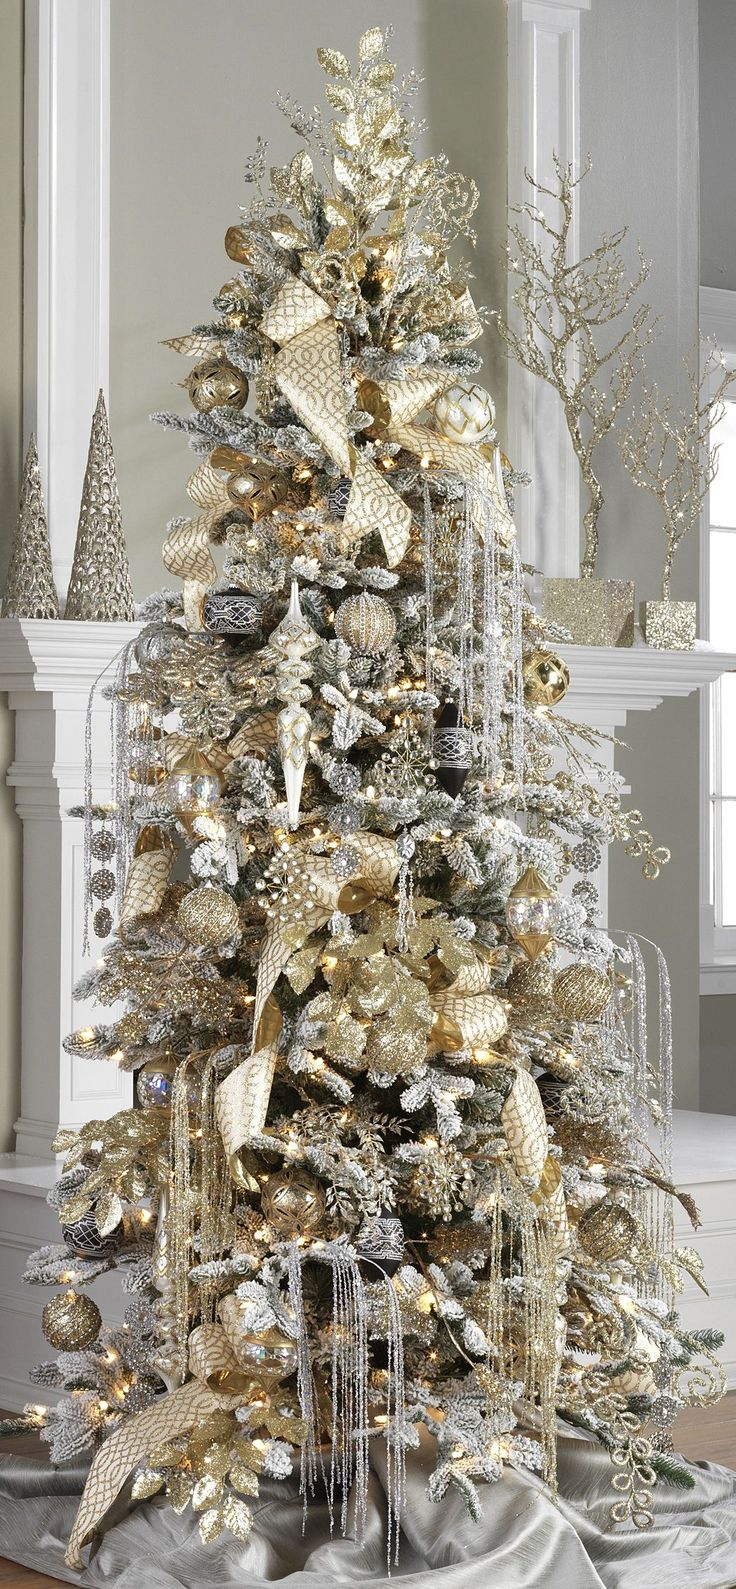 428 best images about Christmas trees on Pinterest | Trees ...